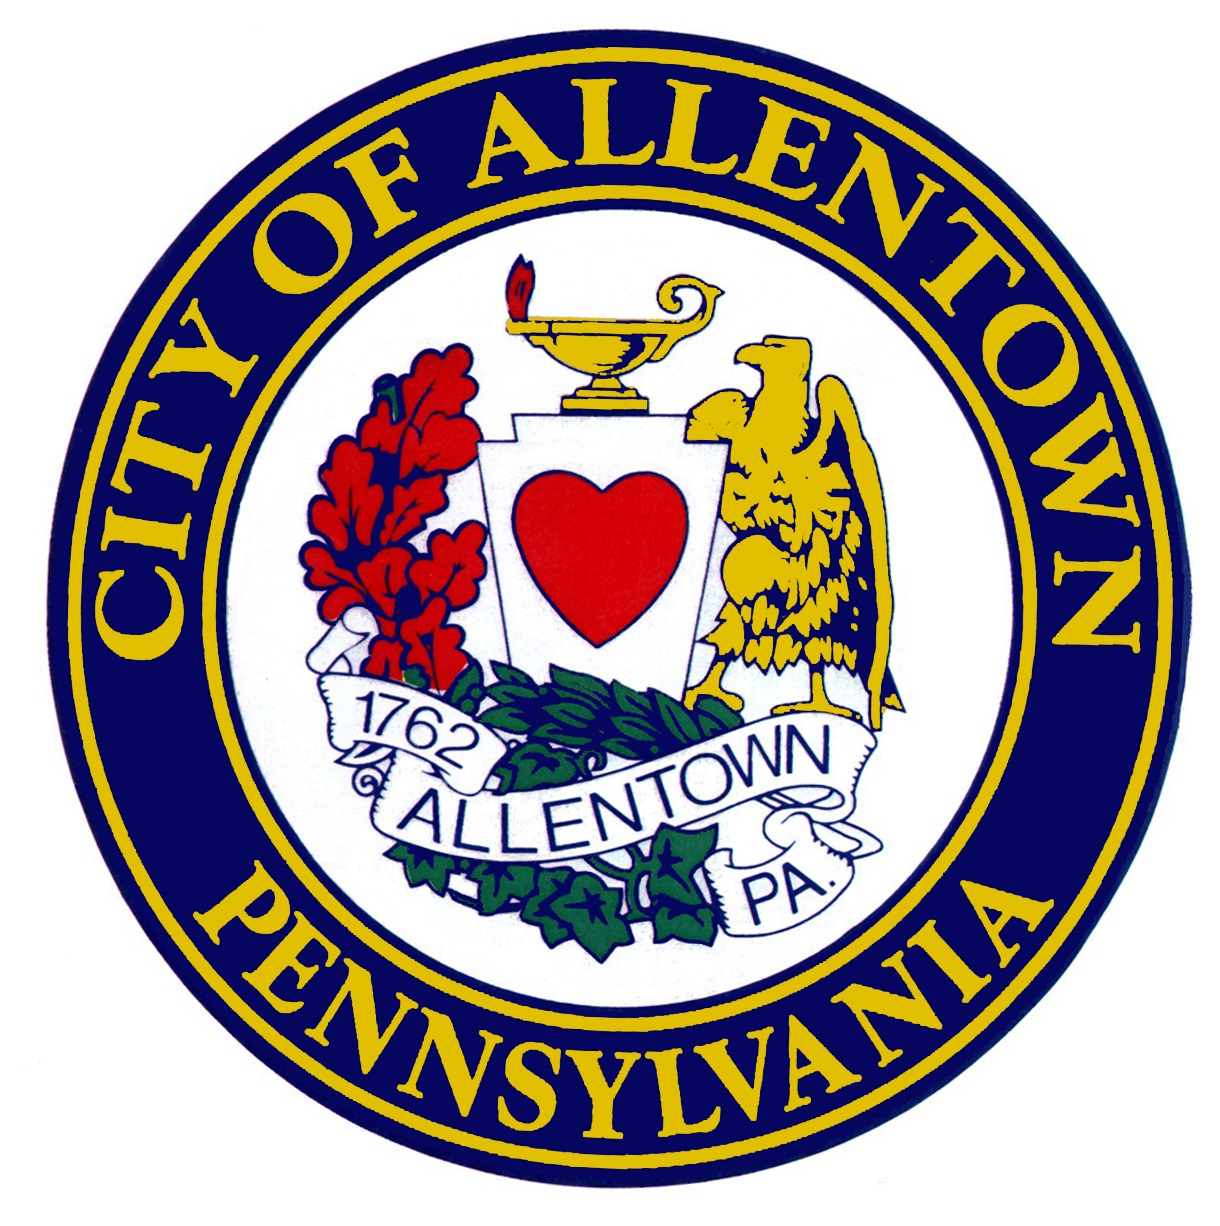 Allentown, Pennsylvania Mailing Lists